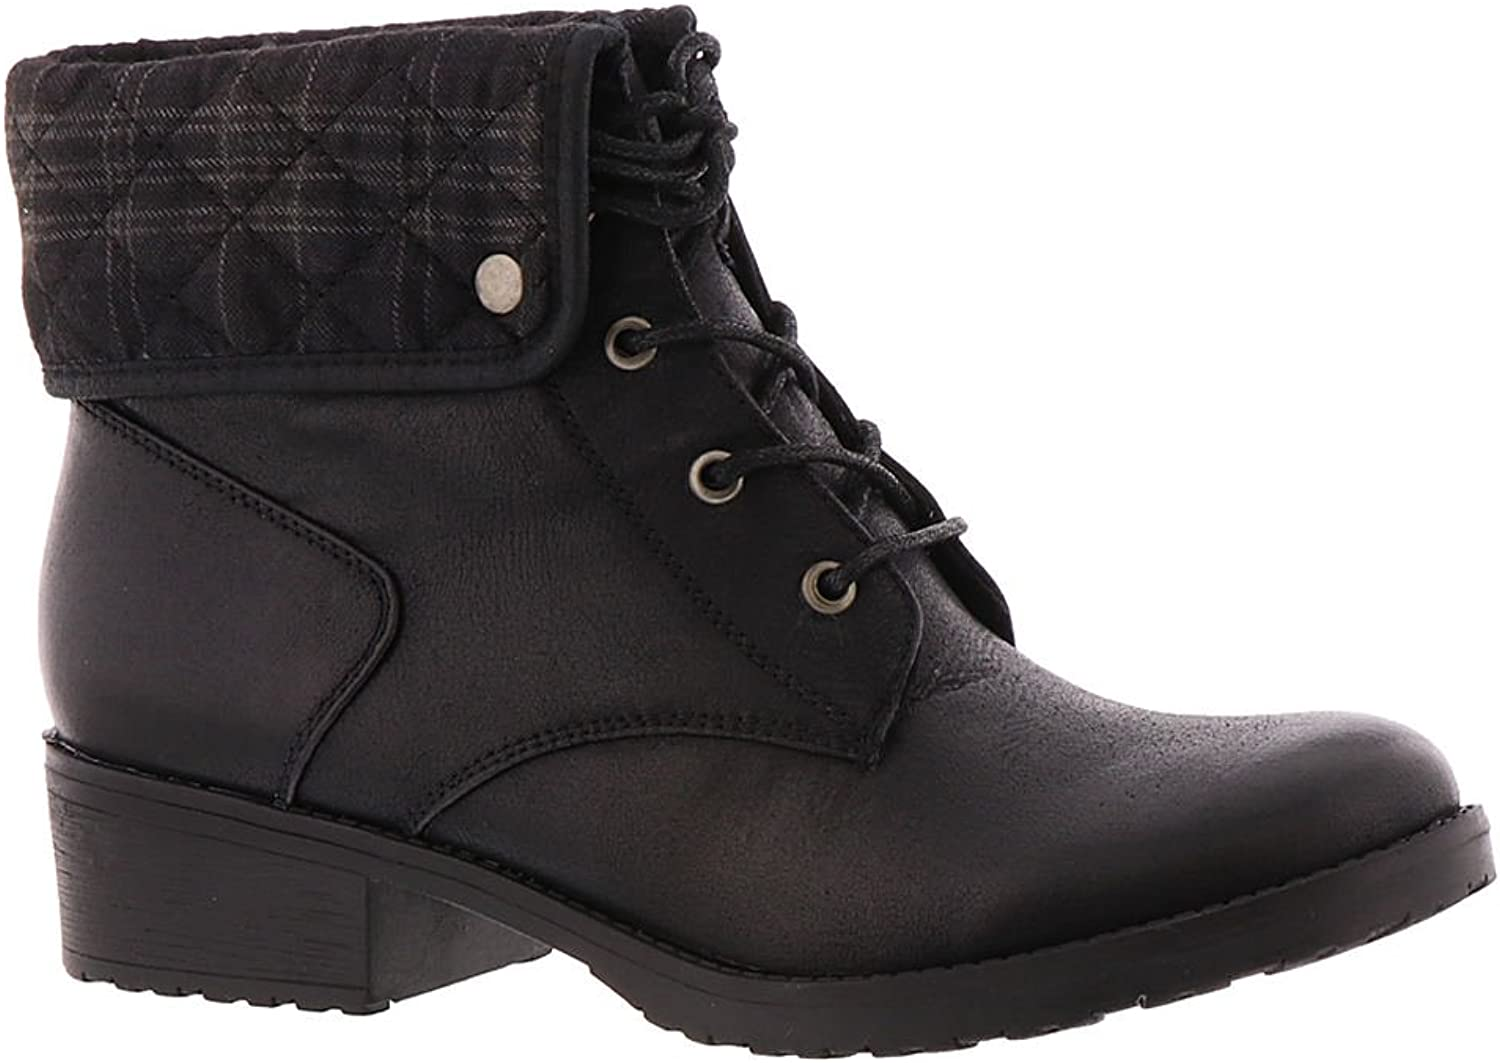 Bare Traps Womens Oswald Almond Toe Ankle Fashion Boots